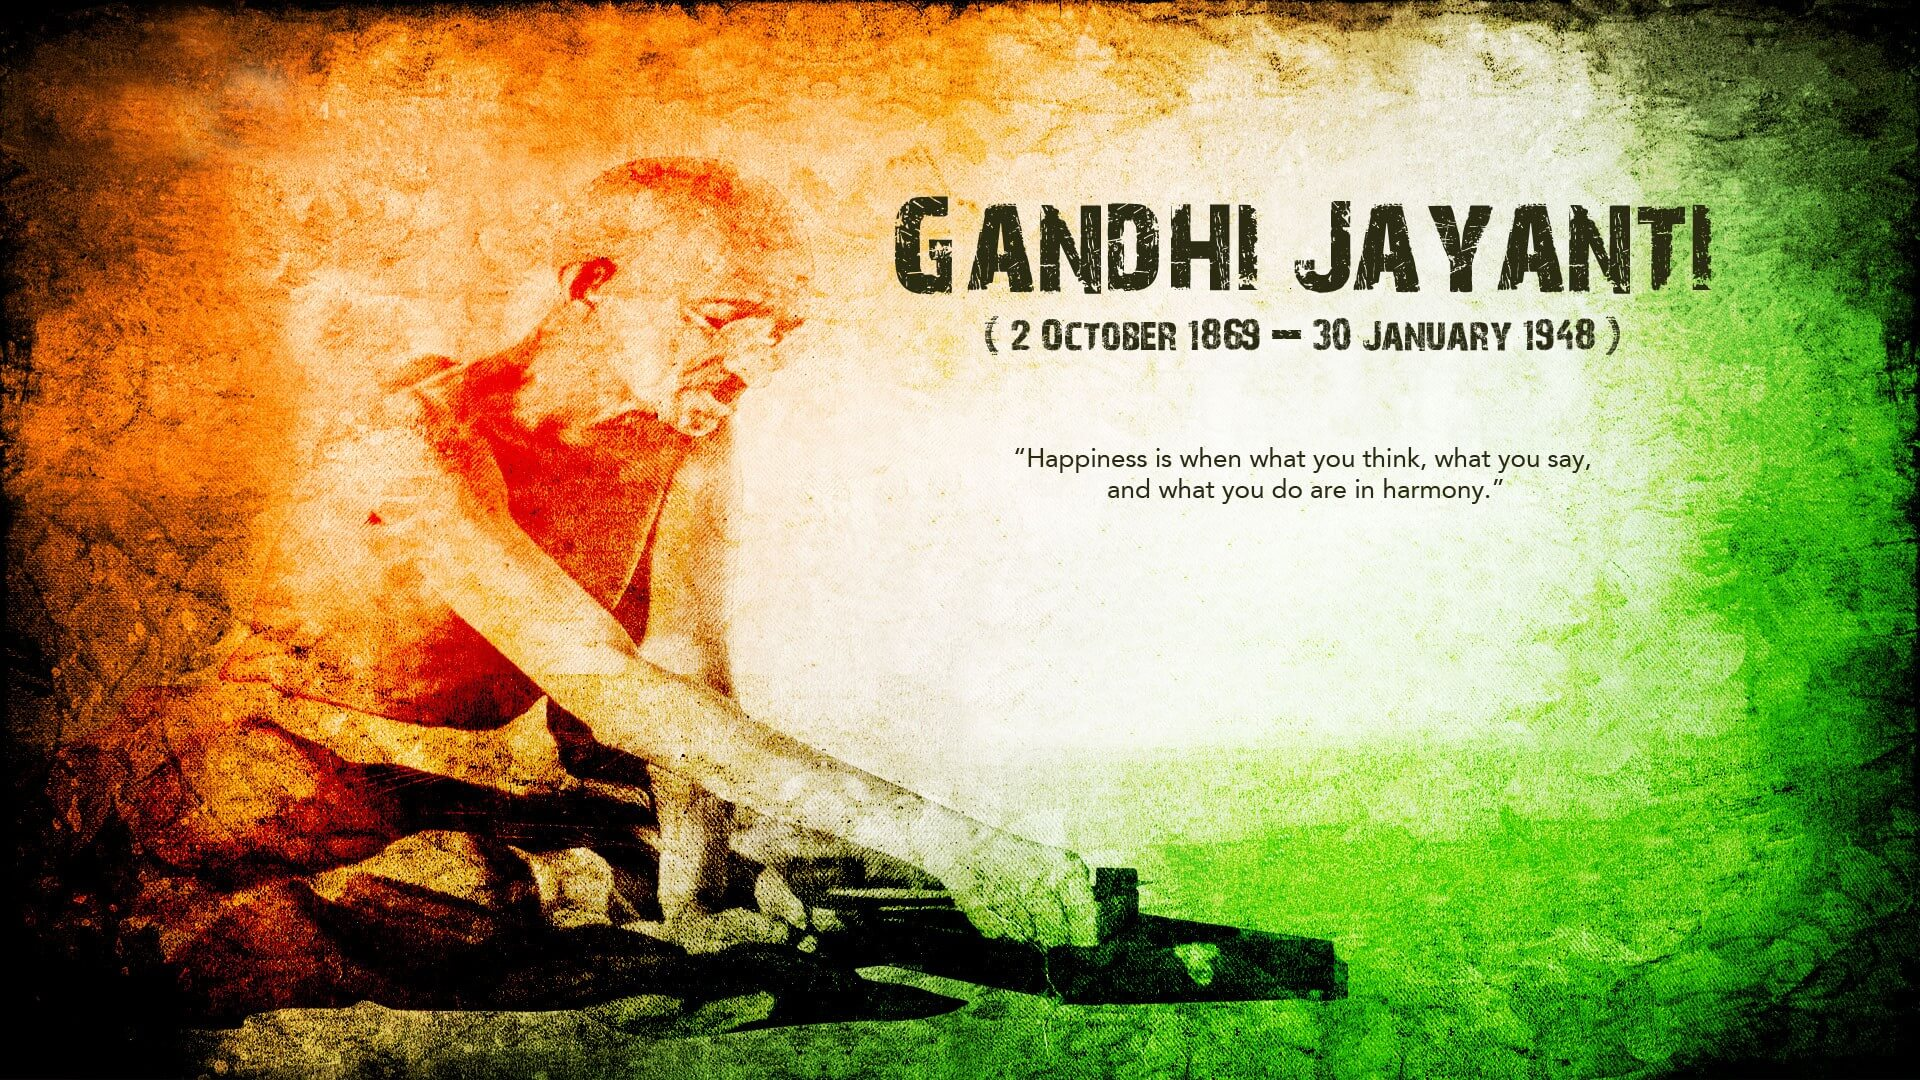 mahatma gandhi jayanti wishes hd wallpaper